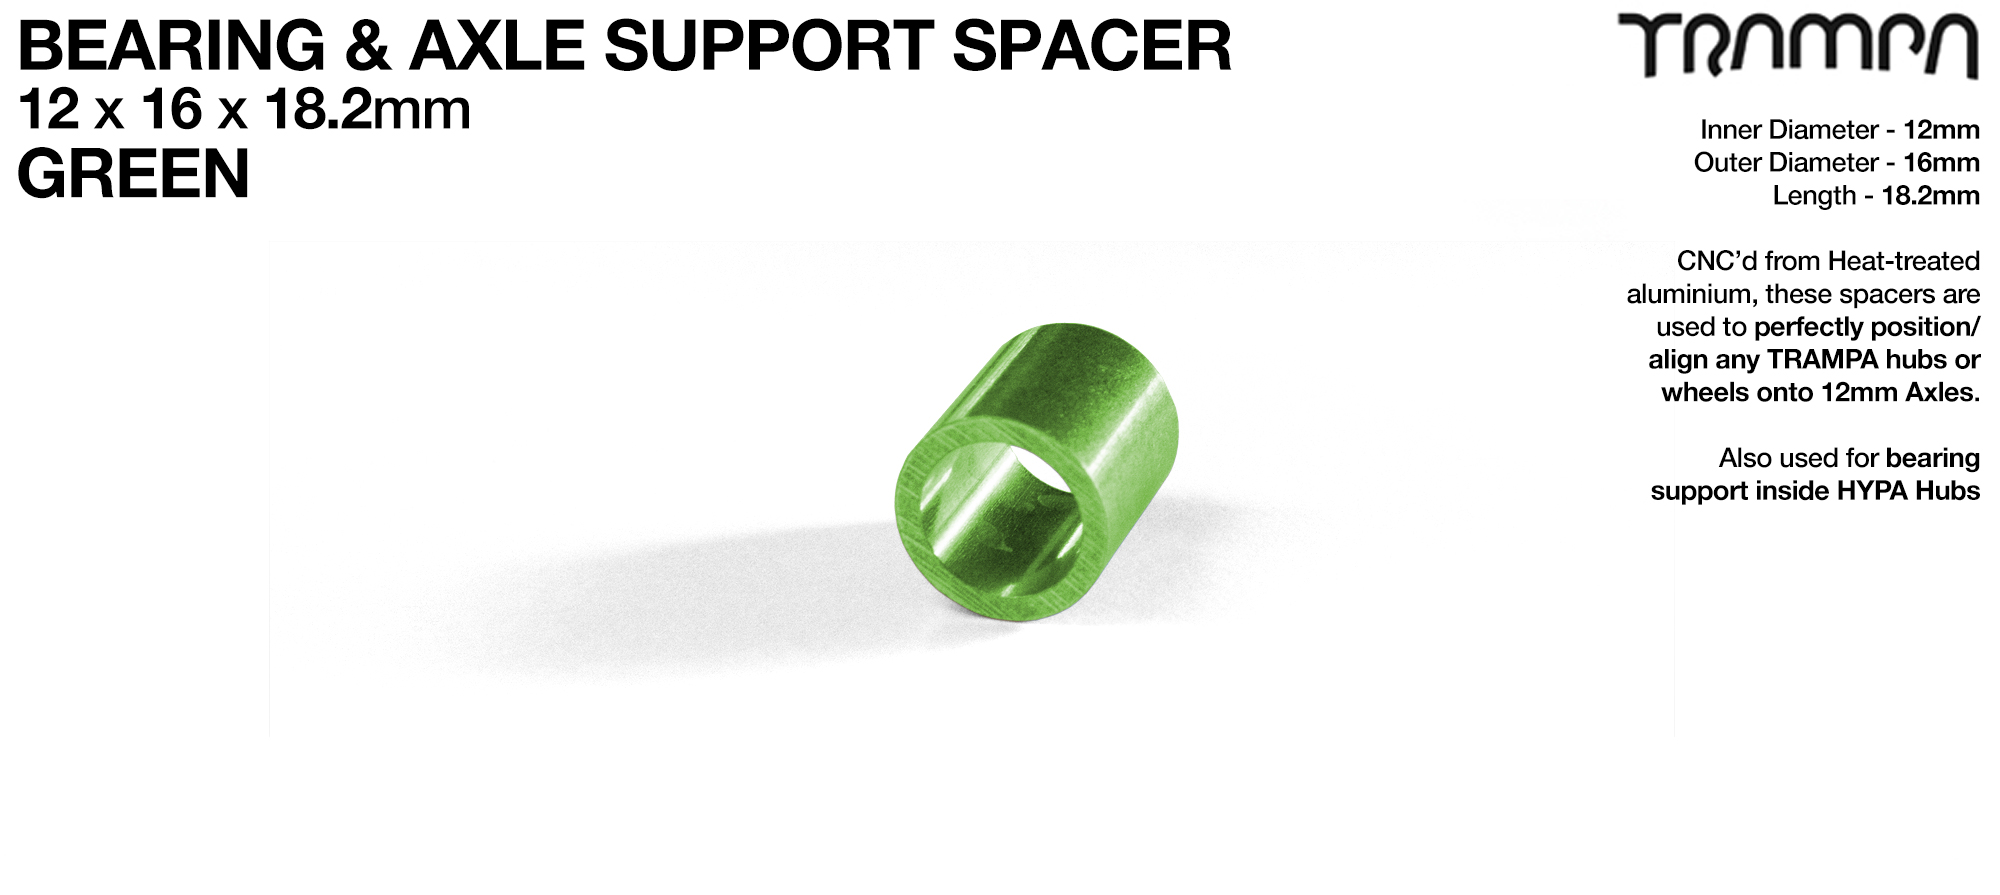 Wheel support spacer for all TRAMPA Wheels on 12mm ATB Axles - CNC precision 12mm x 16mm x 18.2mm  - GREEN